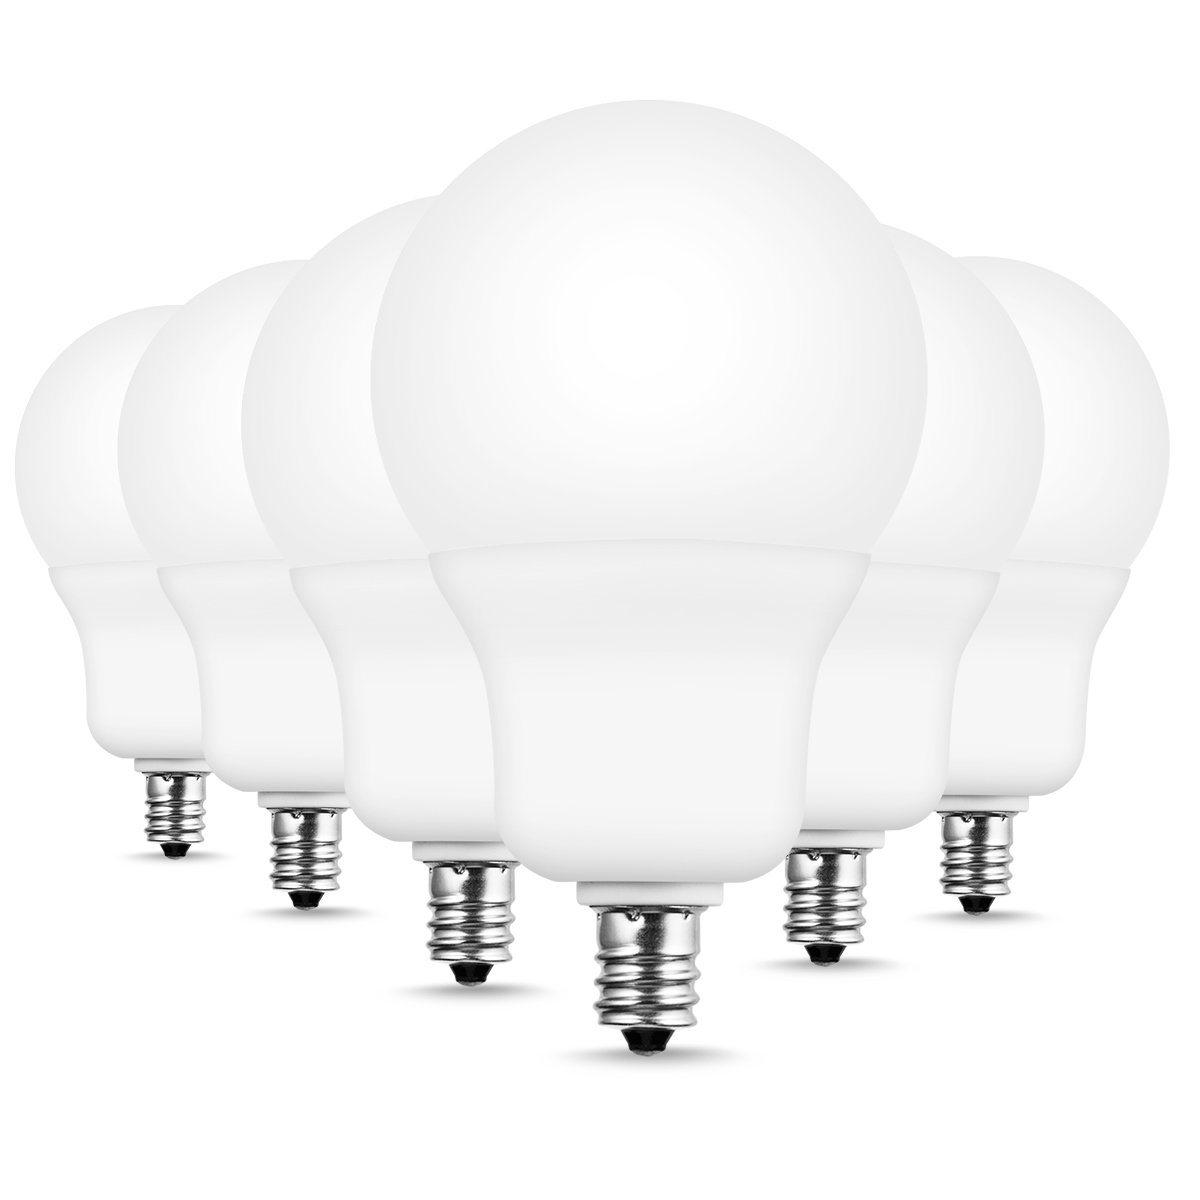 JandCase A19 Candelabra LED Light Bulbs, 7W(60W Incandescent Equivalent), 700 LM, Natural Daylight White 4000K Energy Saving LED Bulb for Ceiling Fan, Home Lighting, E12 Base, Not Dimmable, 6 Pack